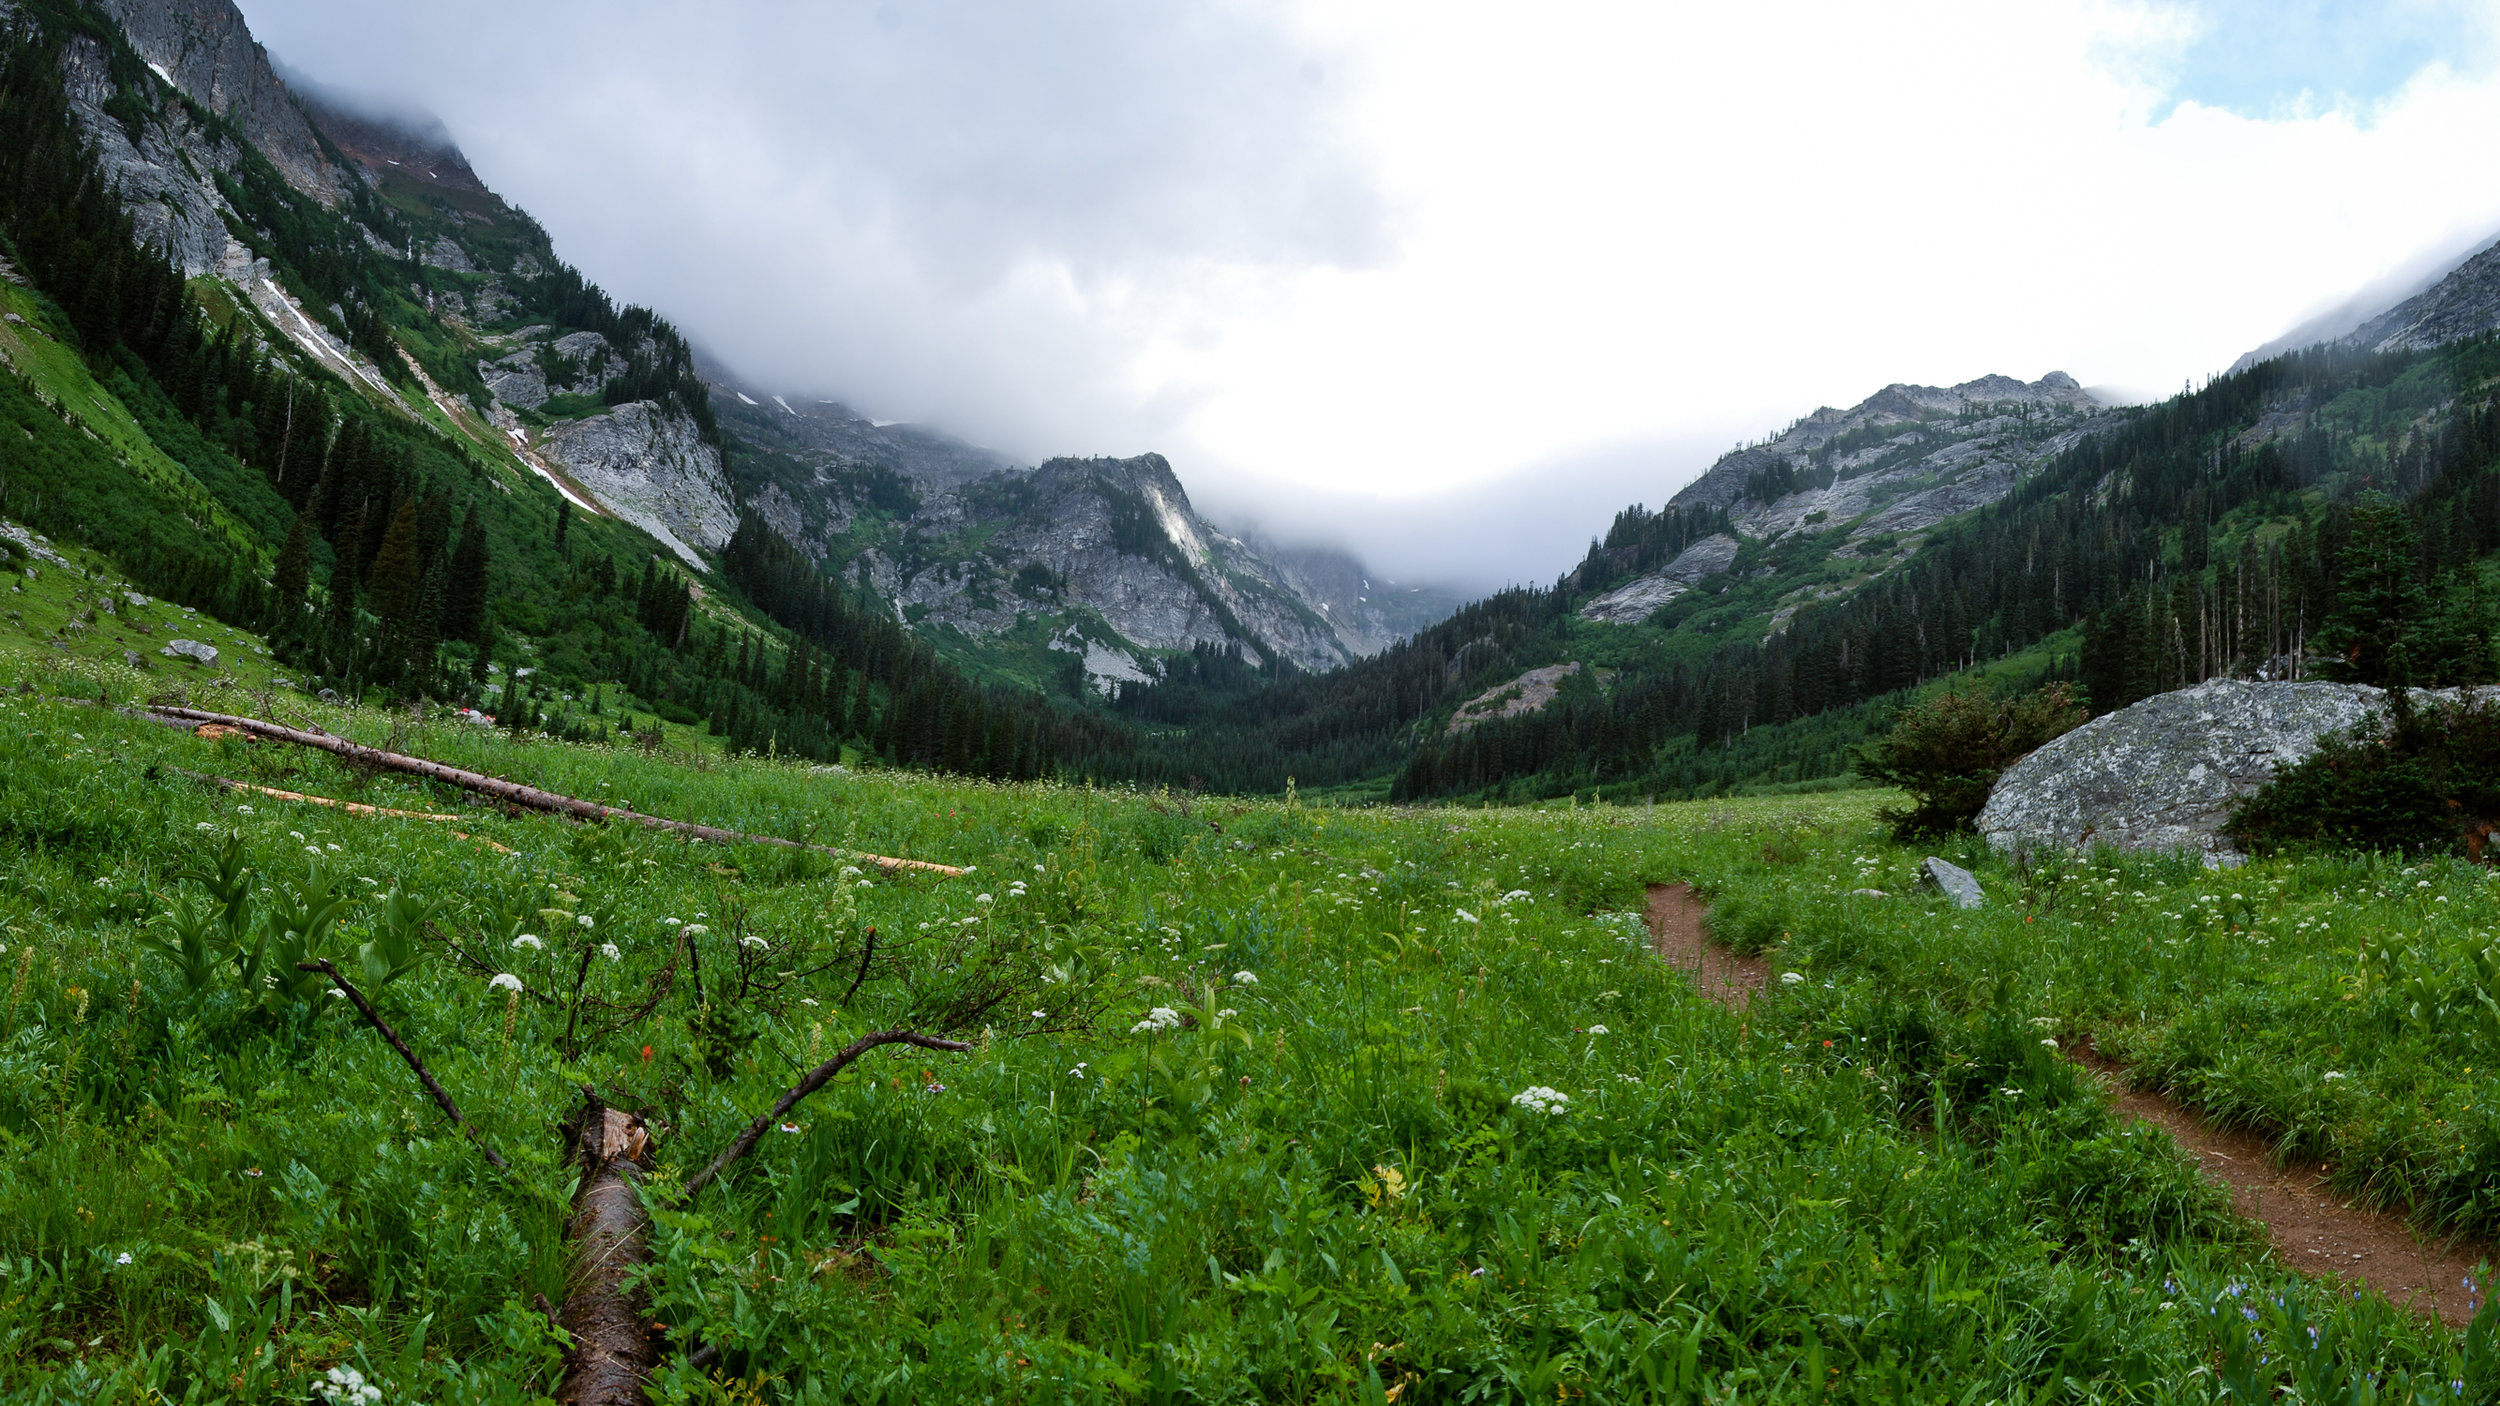 Meadow in the North Cascades near Holden Village.